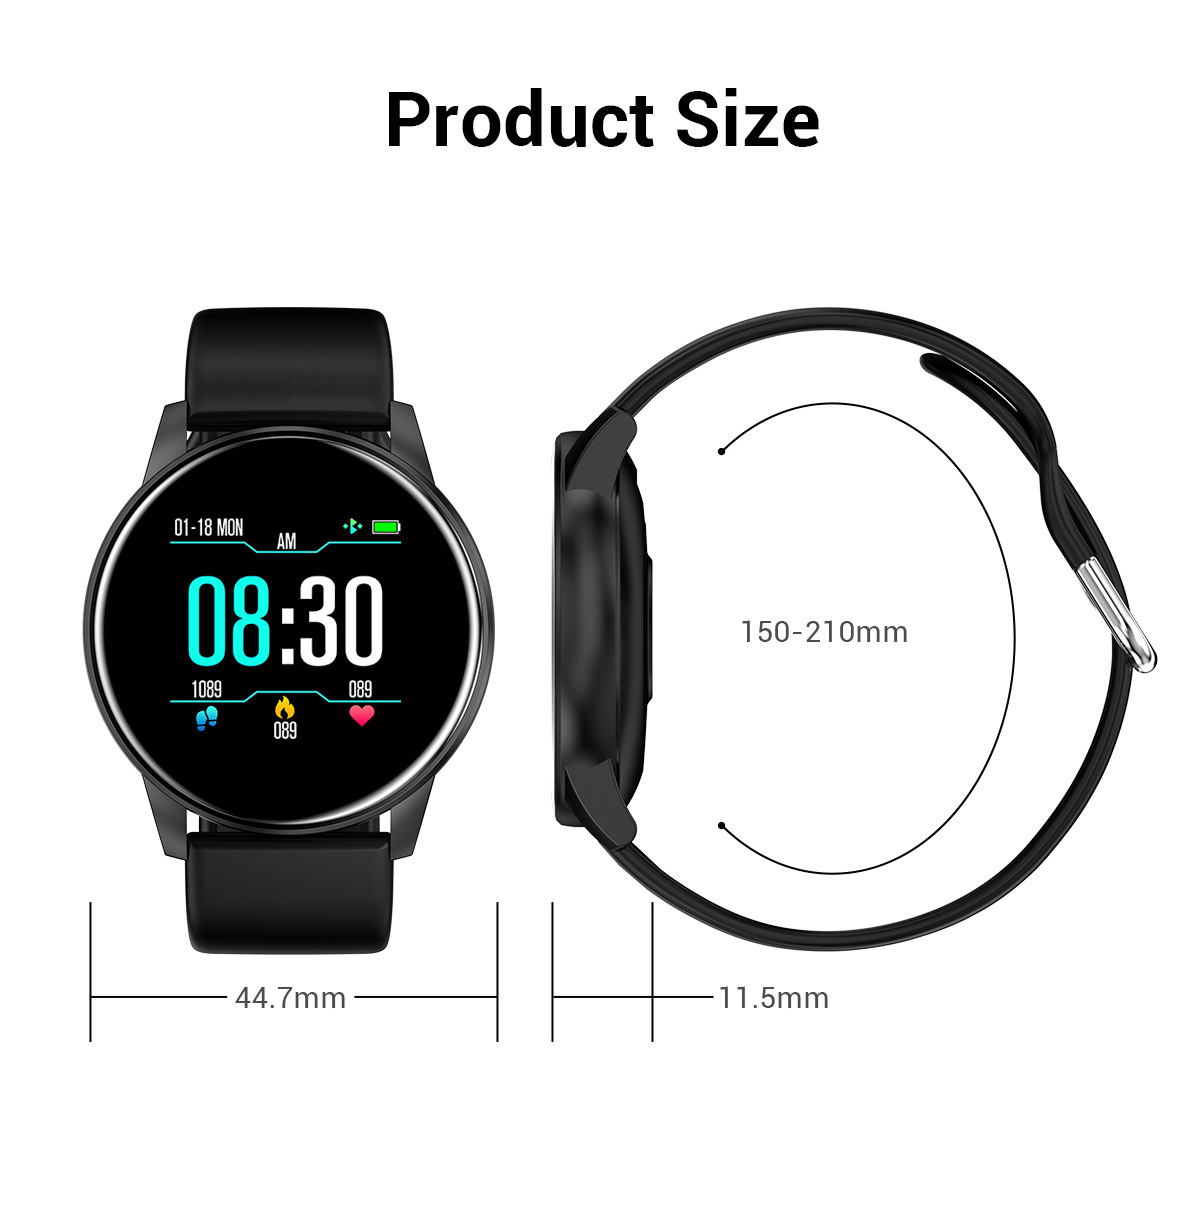 NORTH EDGE NL01 Smartwatch, jam tangan, Men Smart Watch ECG Heart Rate Blood Pressure Bluetooth For Android IOS Sports Watches Fitness Tracker, wristband, bracelet